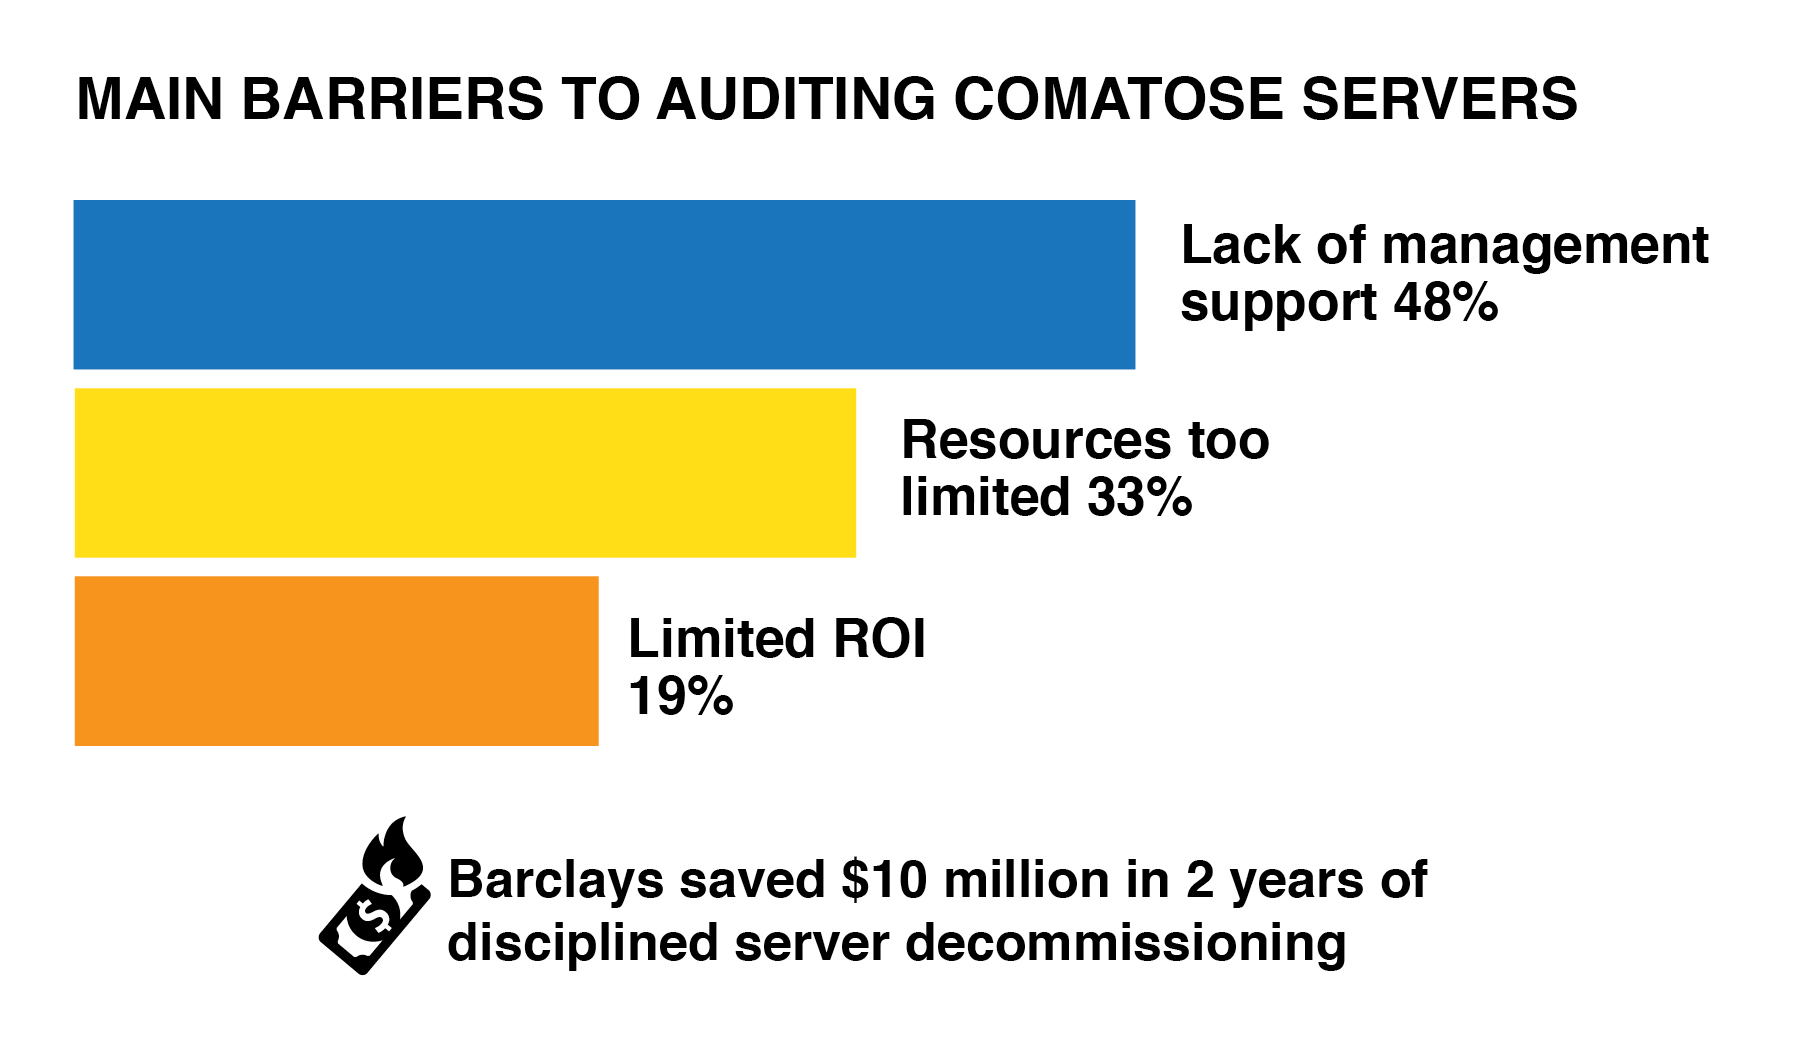 See auditing comatose servers graphic